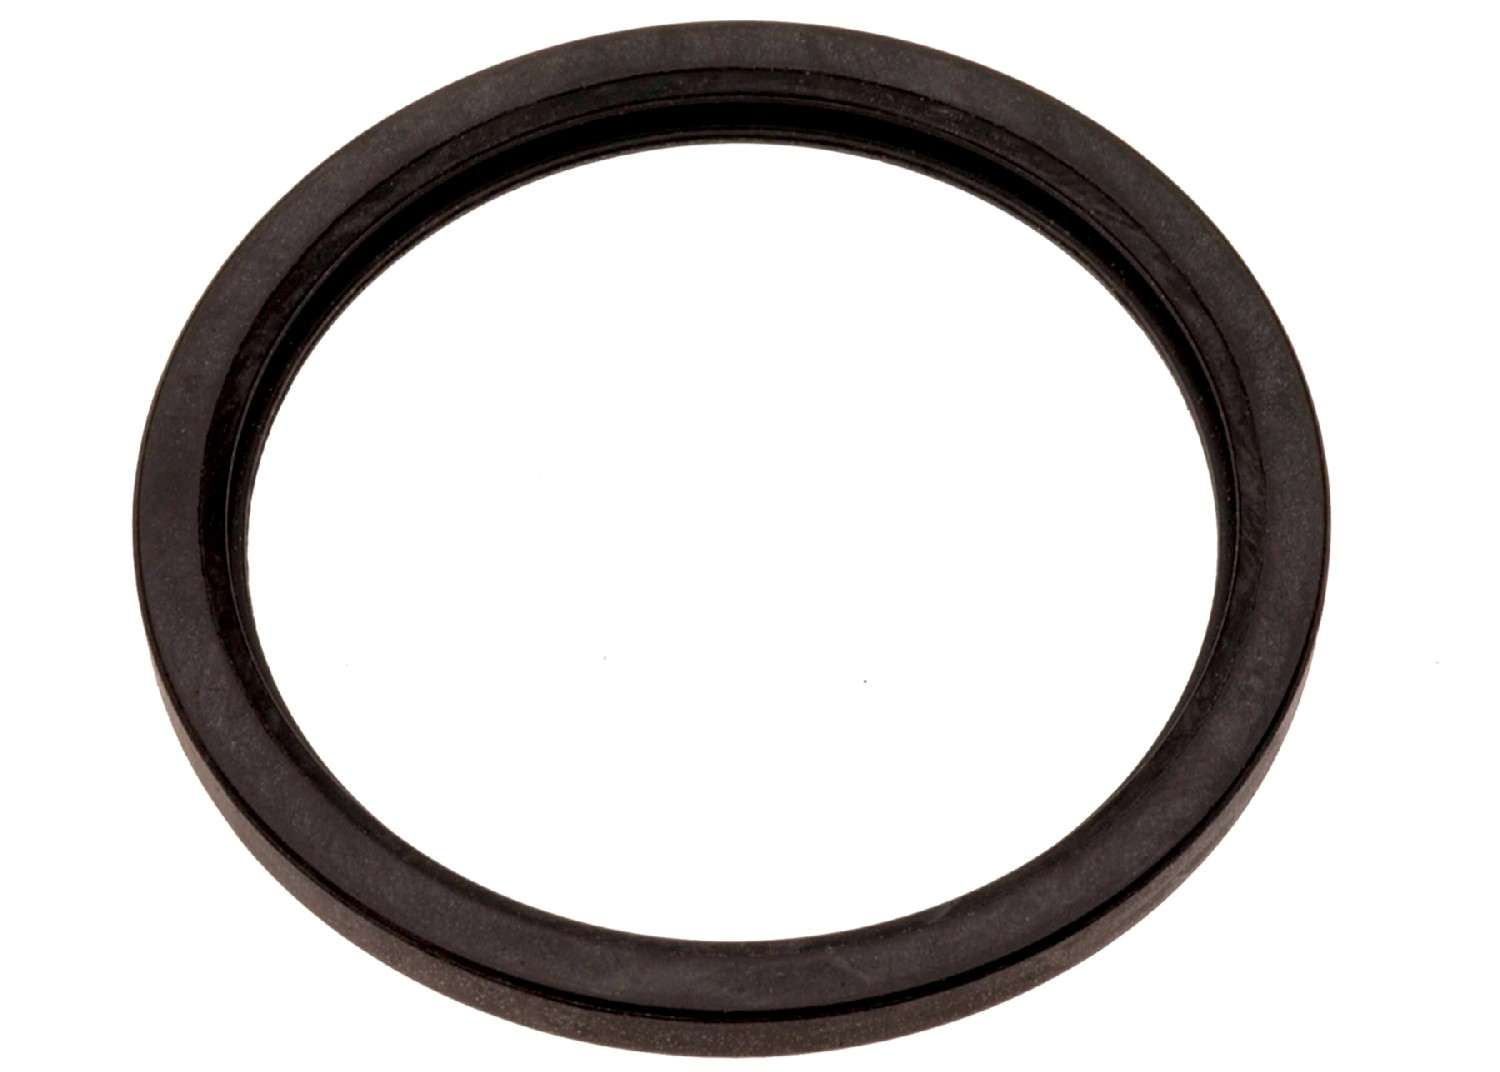 ACDELCO GM ORIGINAL EQUIPMENT - Engine Coolant Thermostat Seal - DCB 24577118